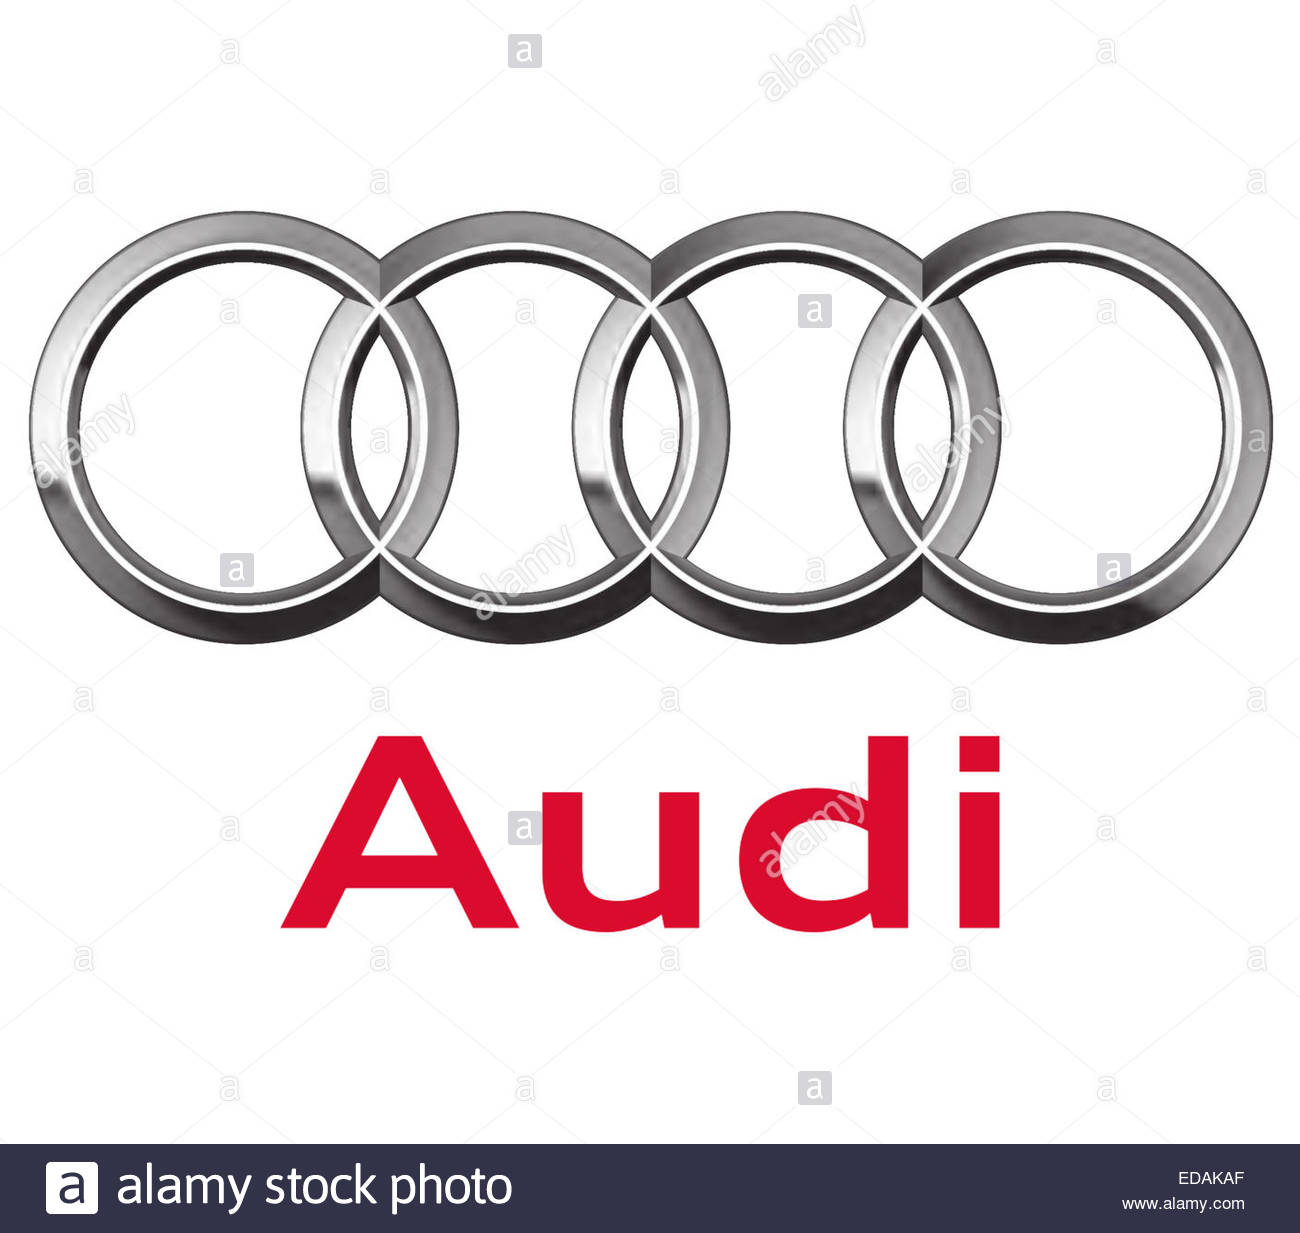 Audi Logo Icon Sign Stock Photo Royalty Free Image